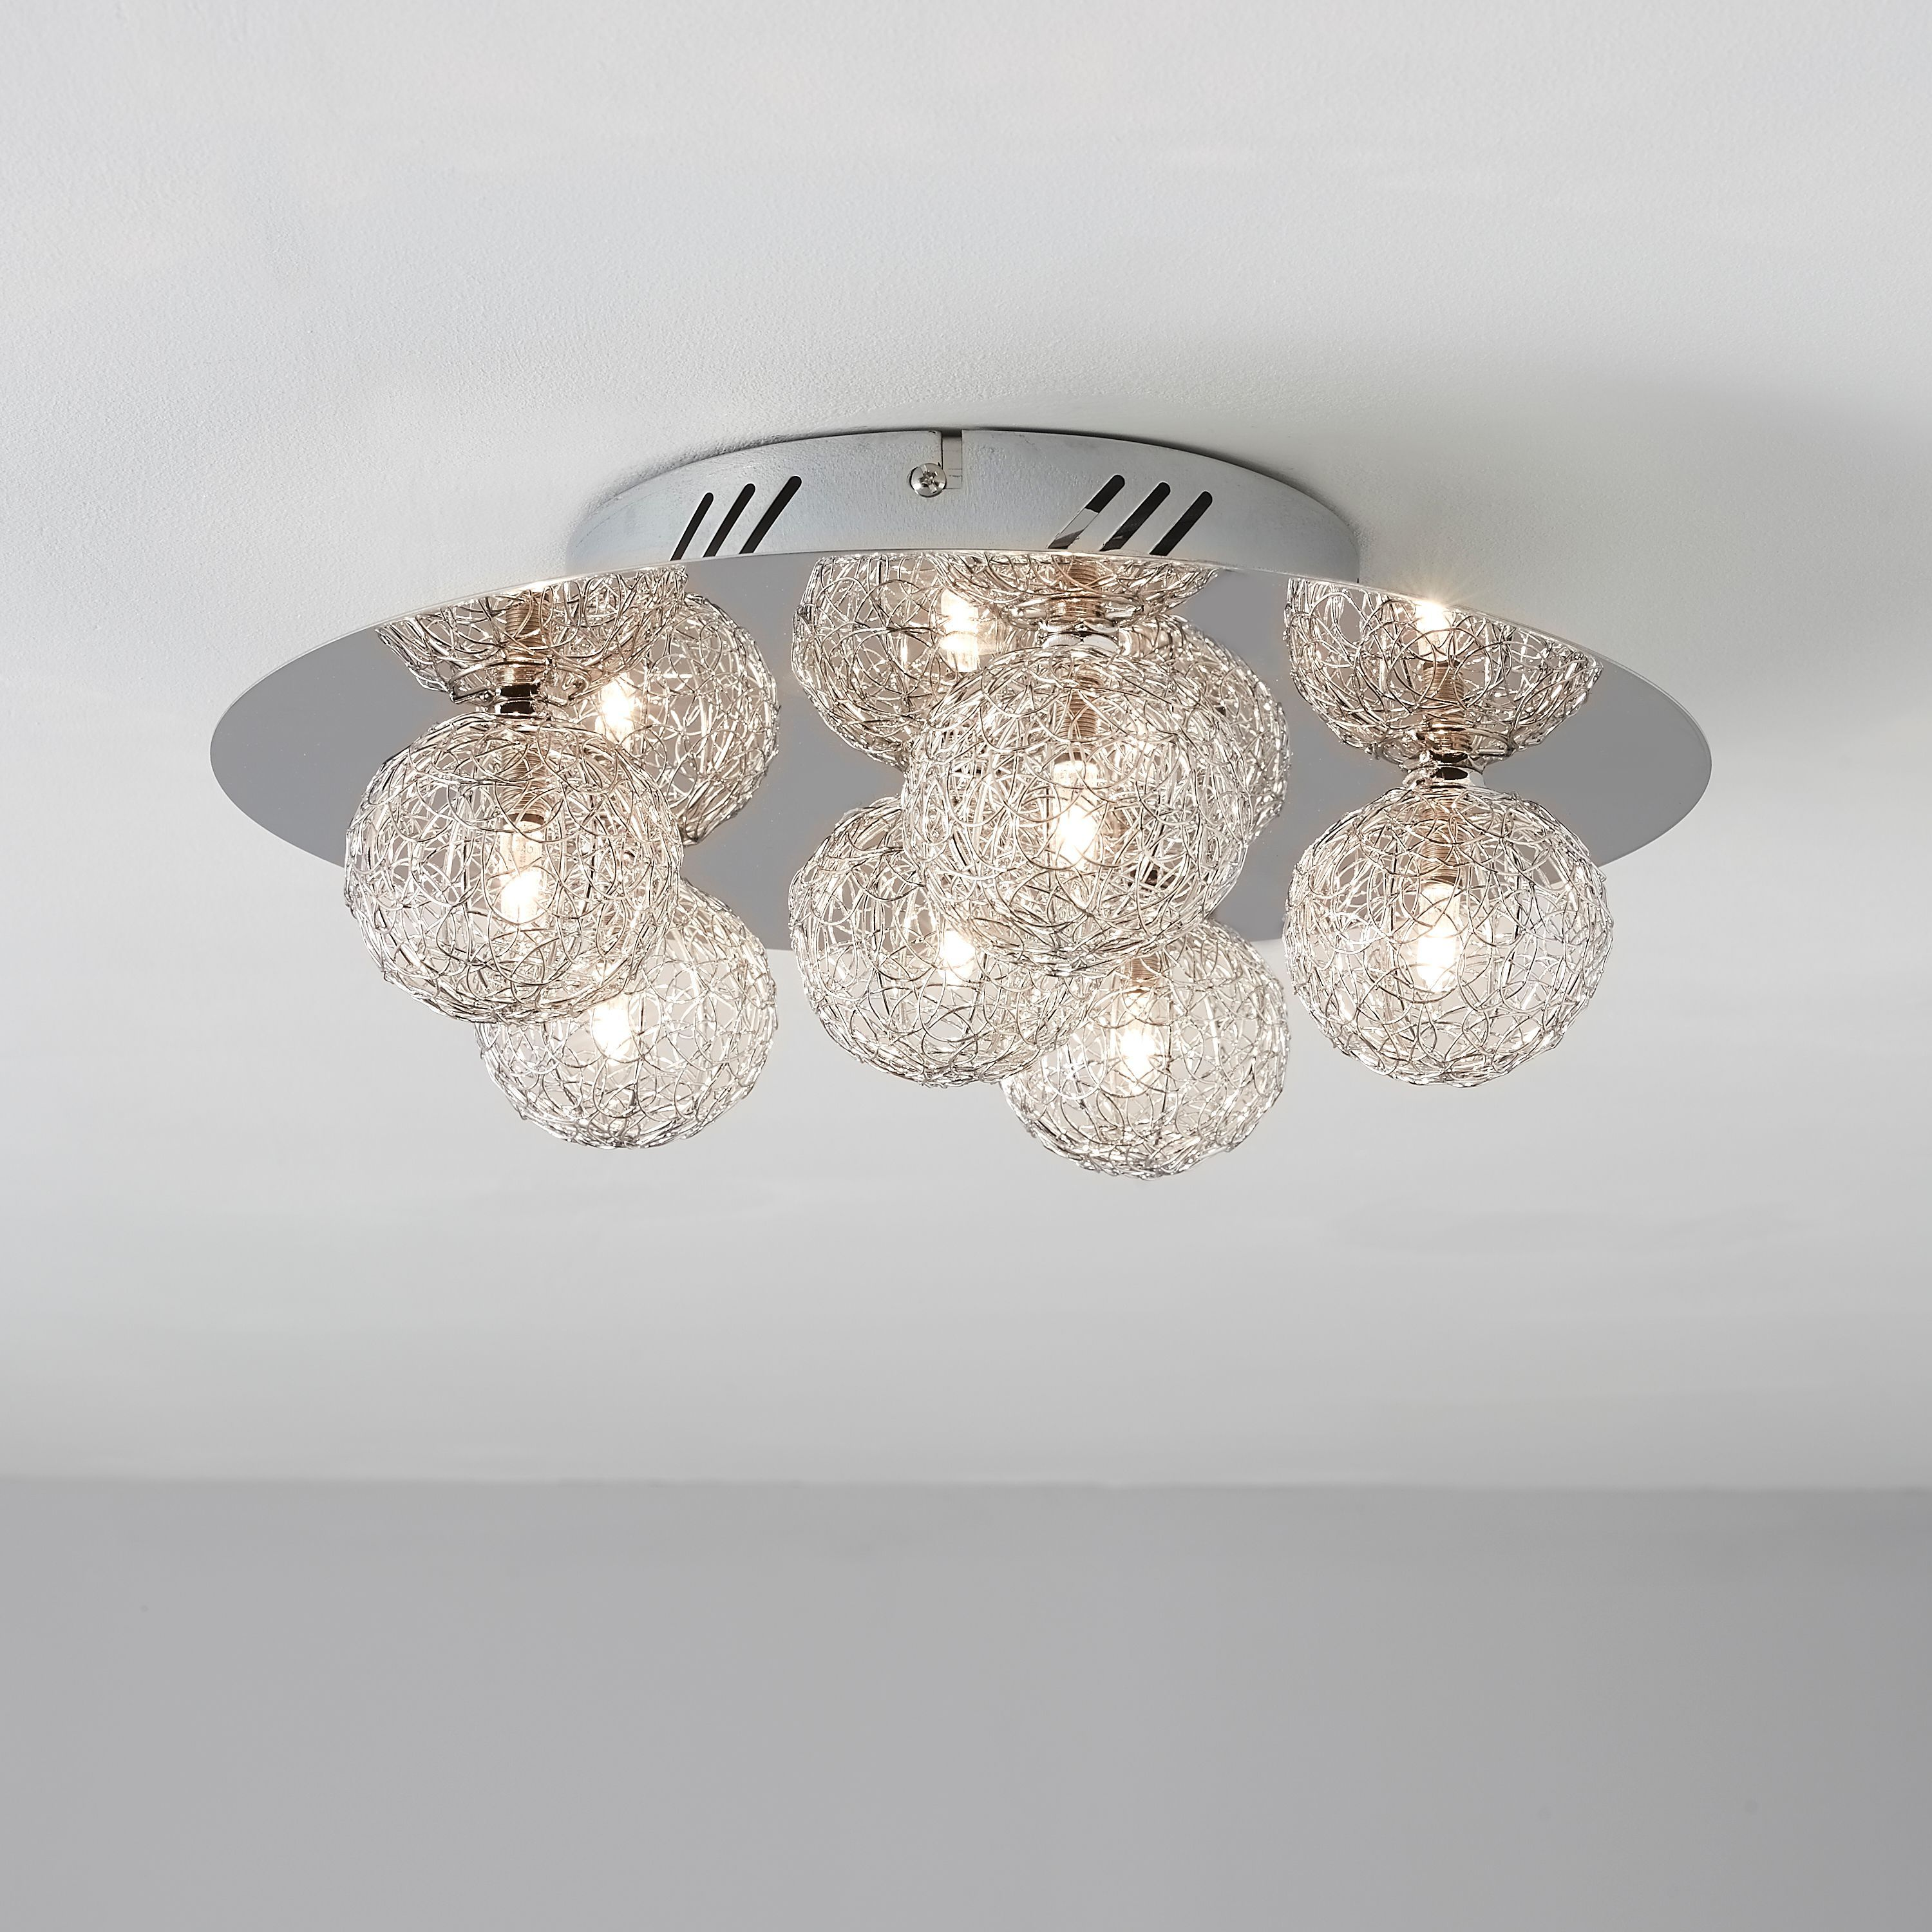 Pallas chrome effect 6 lamp ceiling light departments diy at bq pallas chrome effect 6 lamp ceiling light departments diy at bq mozeypictures Image collections